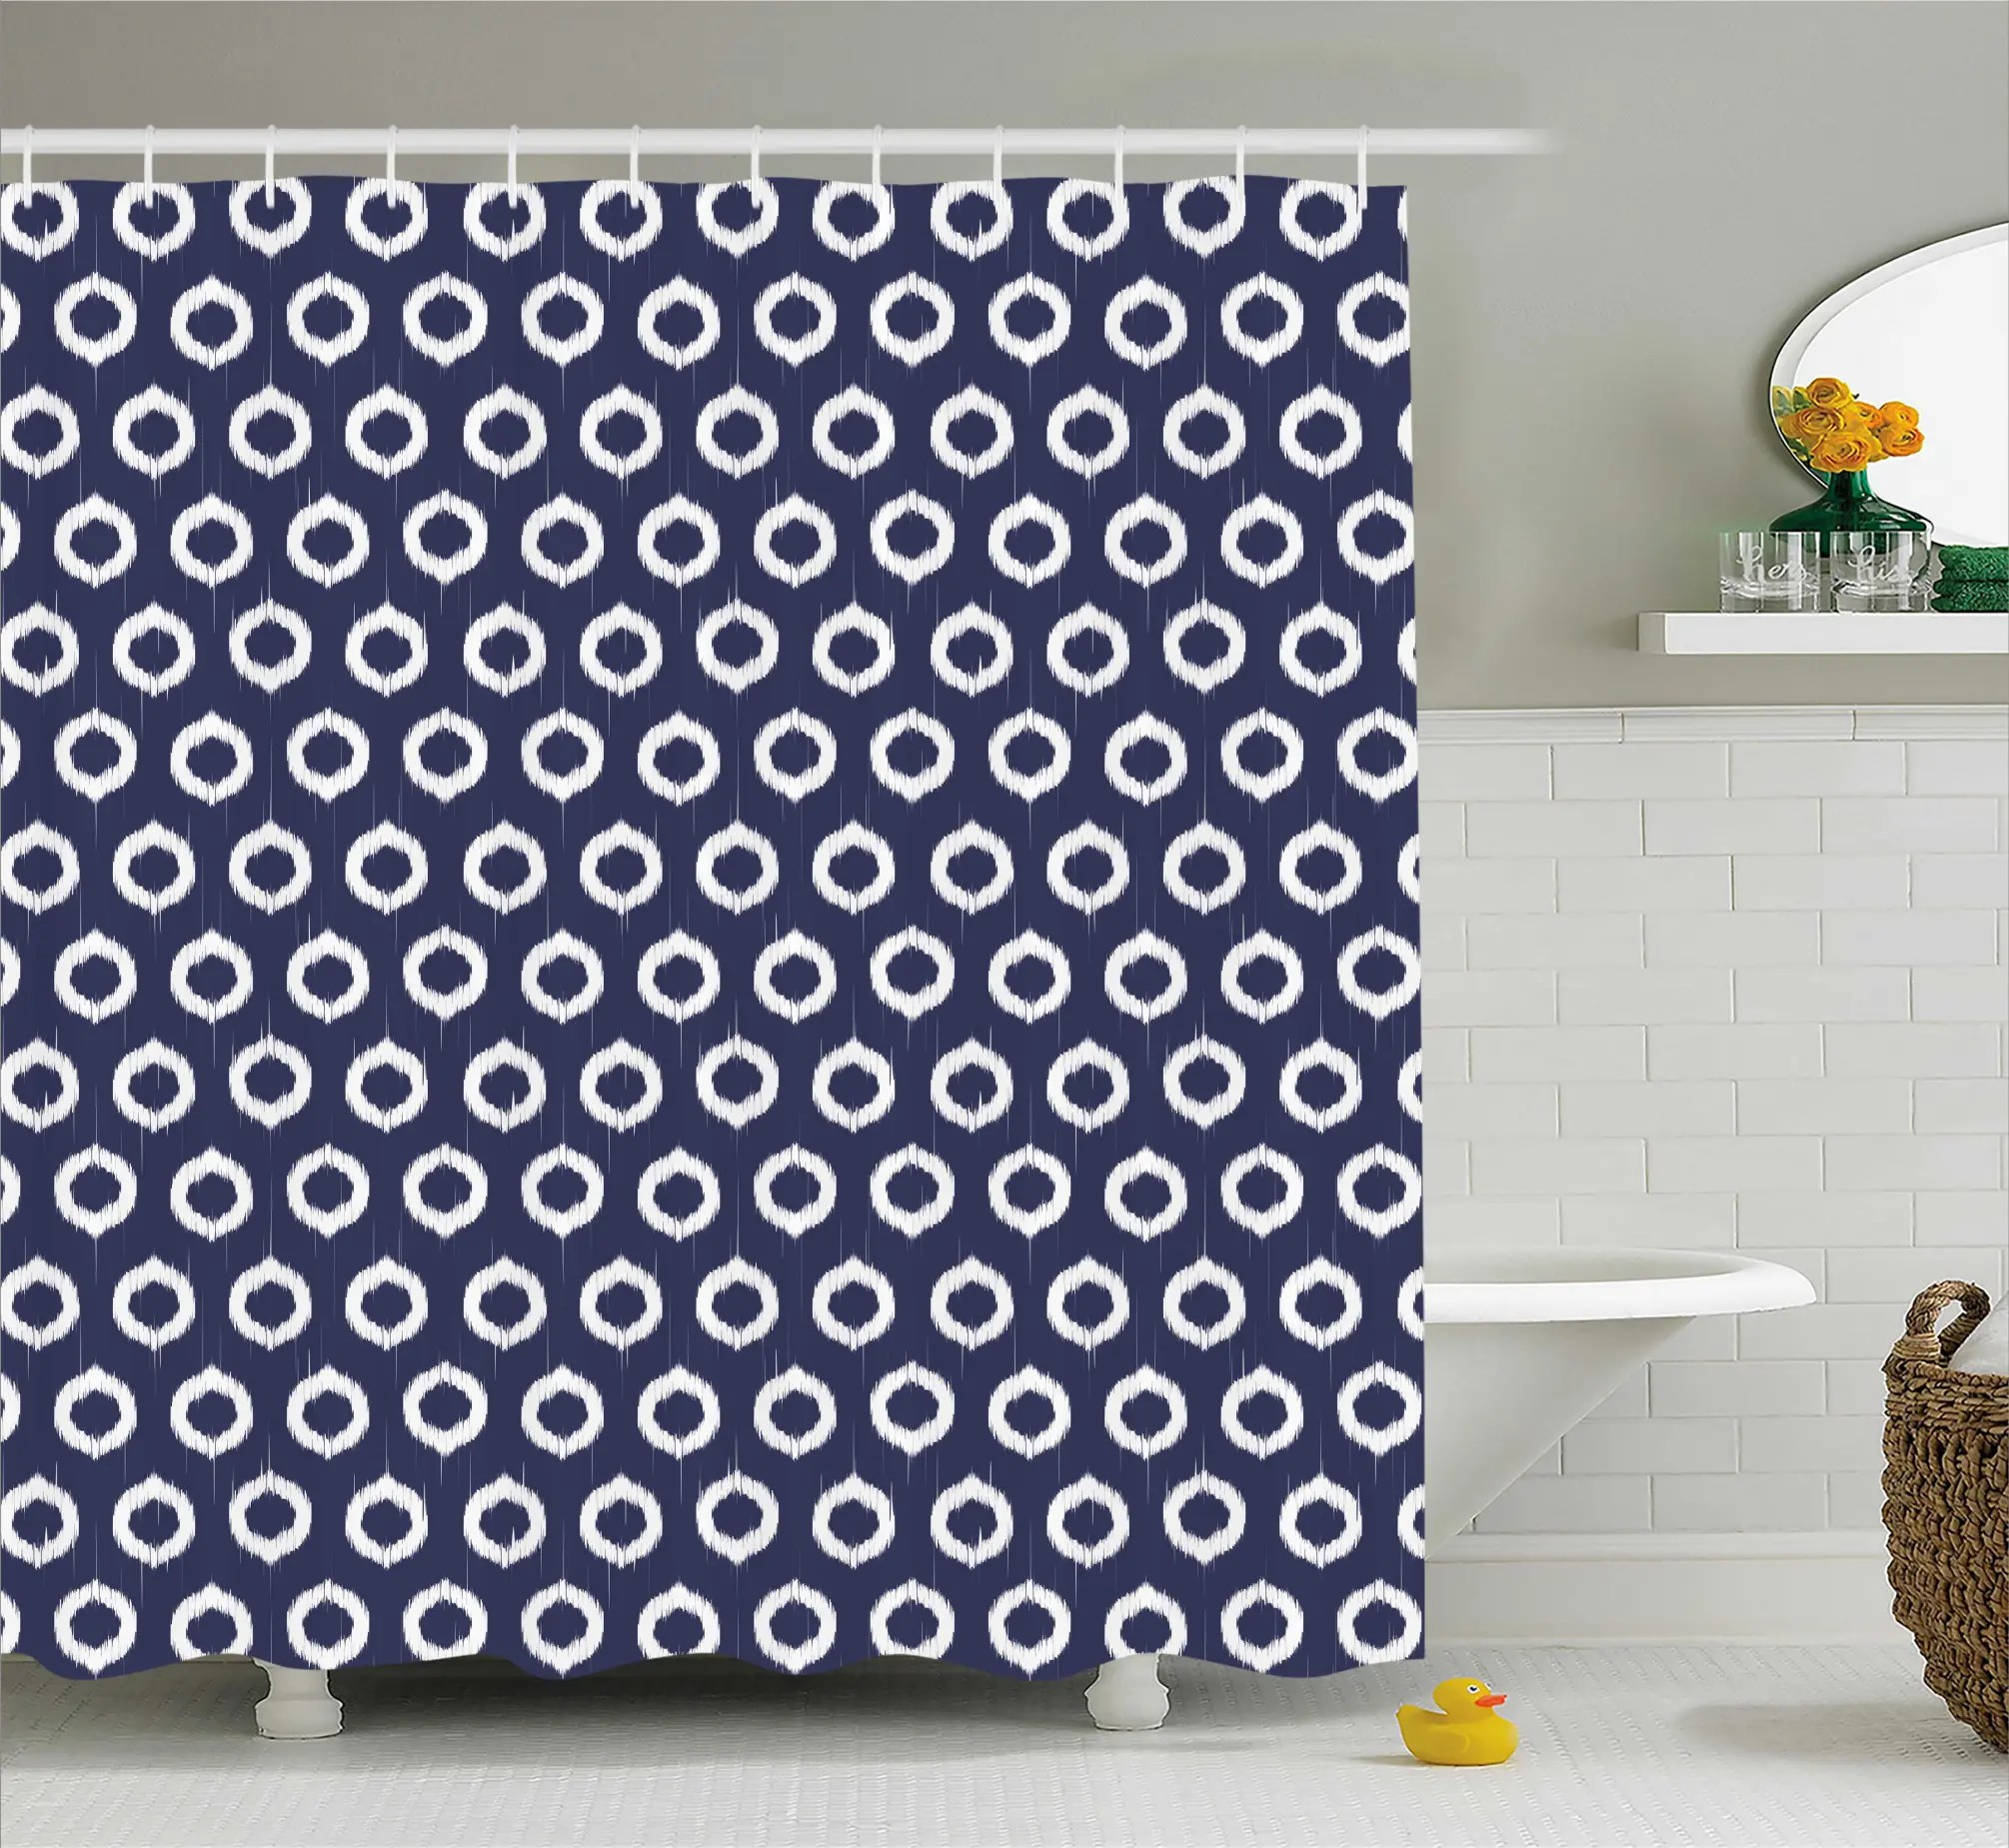 82 Shower Curtain Grunge Sketchy Design Shower Curtain